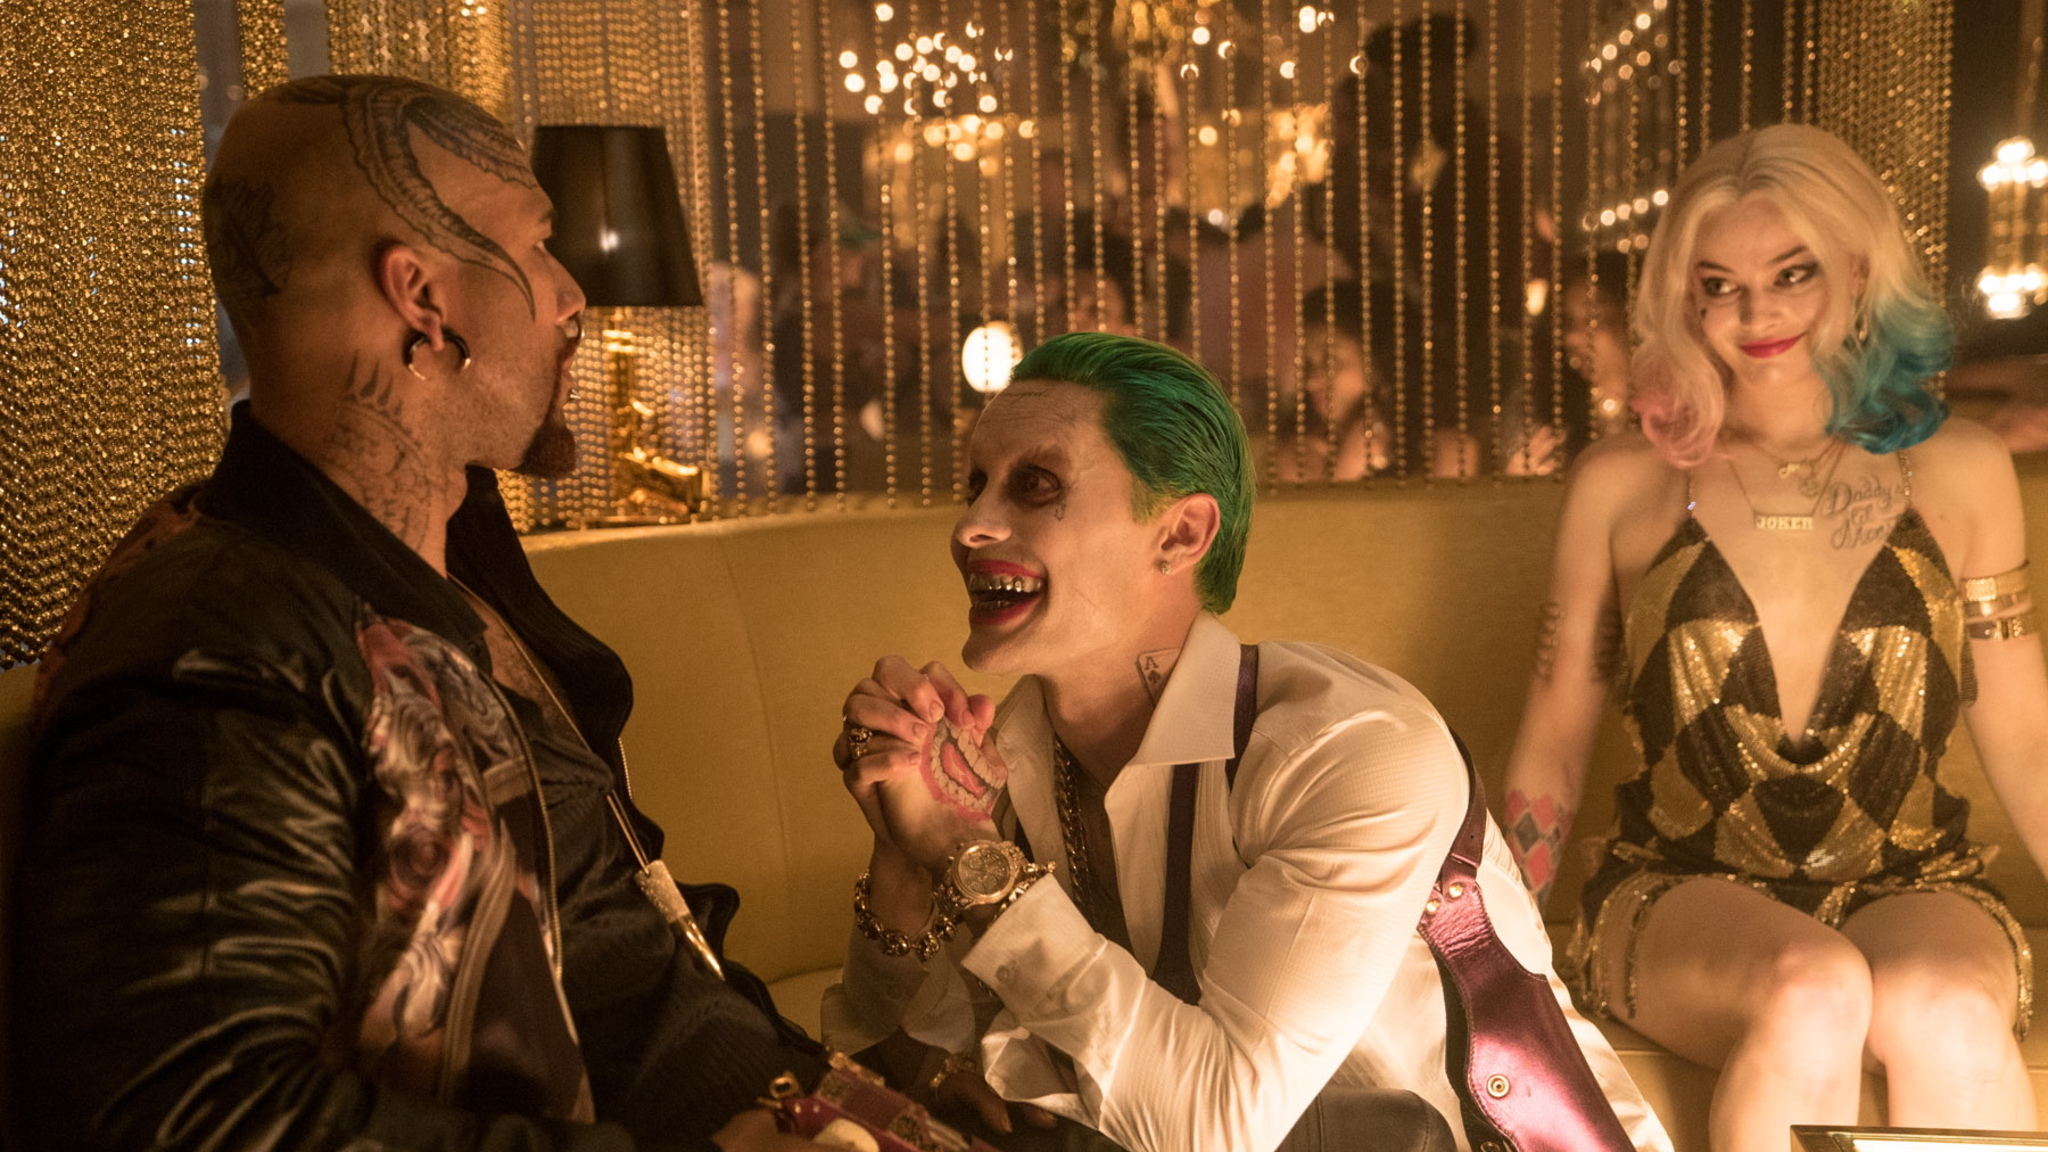 2048x1152 Joker Harley Quinn Suicide Squad 2048x1152 Resolution Hd